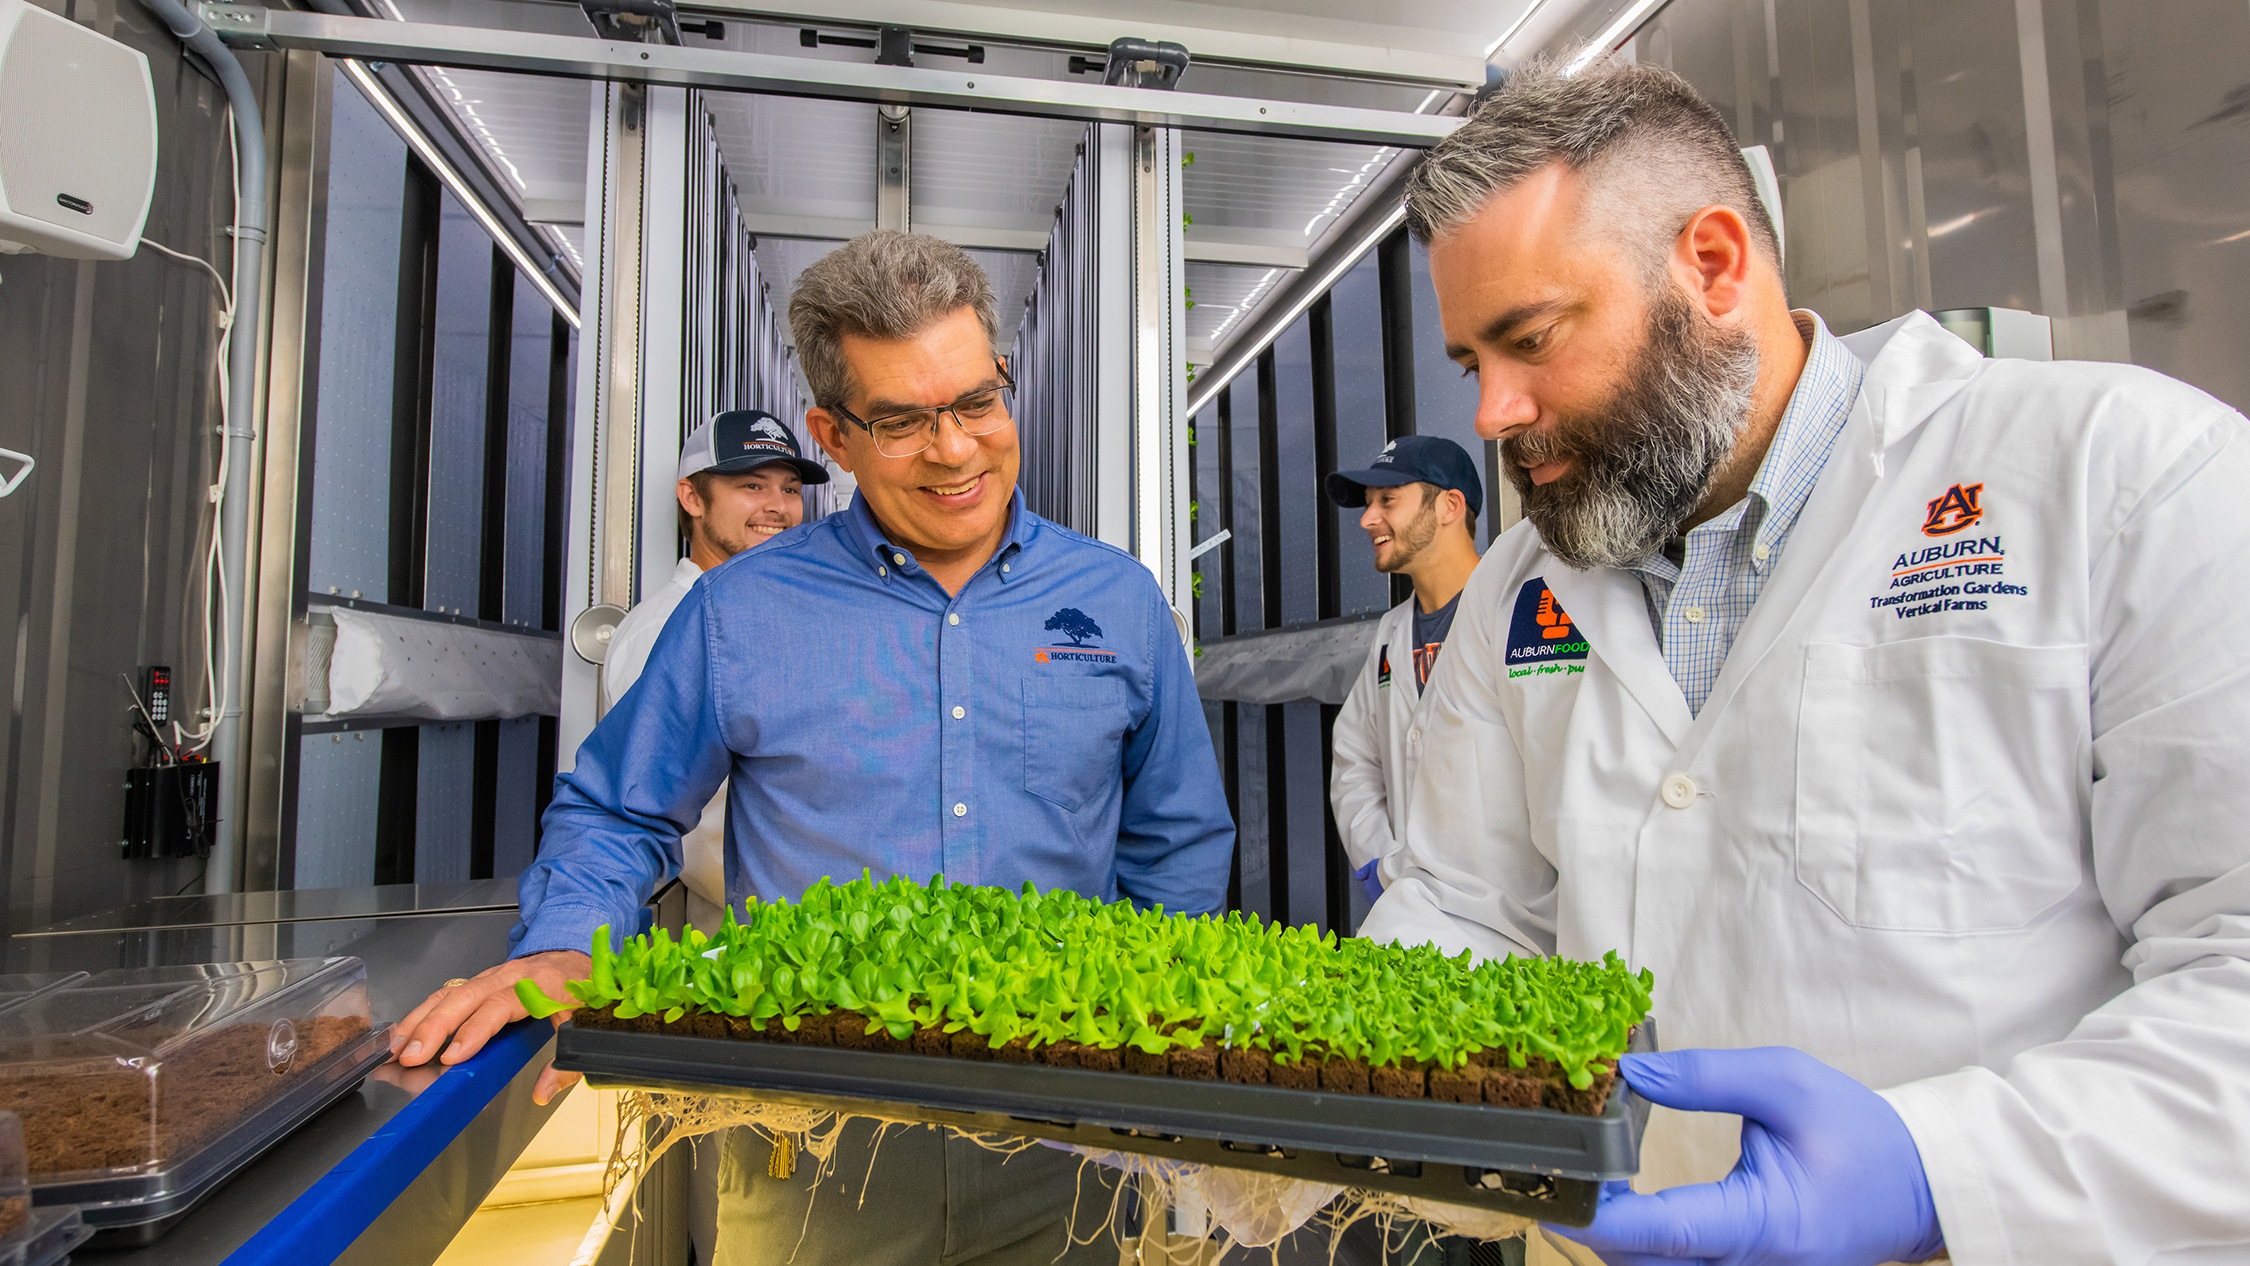 Desmond Layne and Daniel Wells handle plants in a converted shipping container